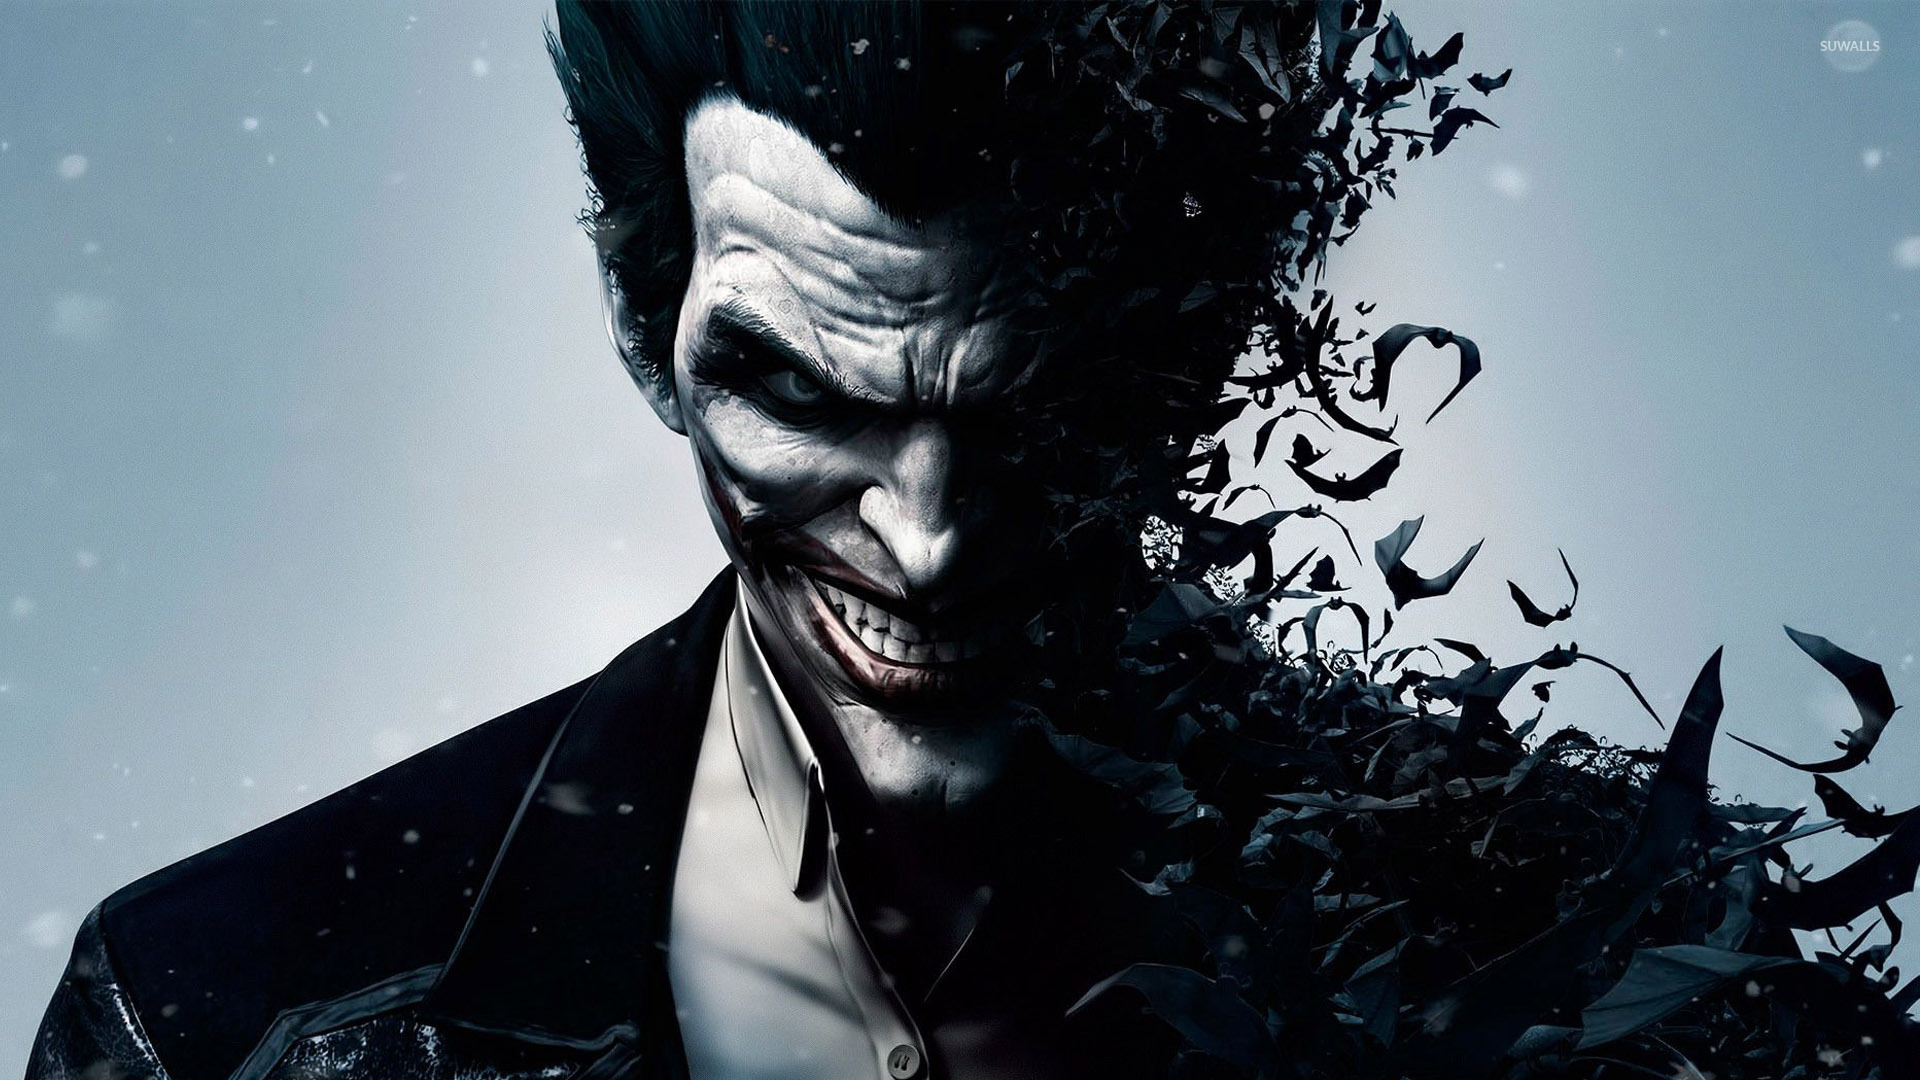 Joker   Batman   Arkham Origins wallpaper   Game wallpapers   27258 1920x1080